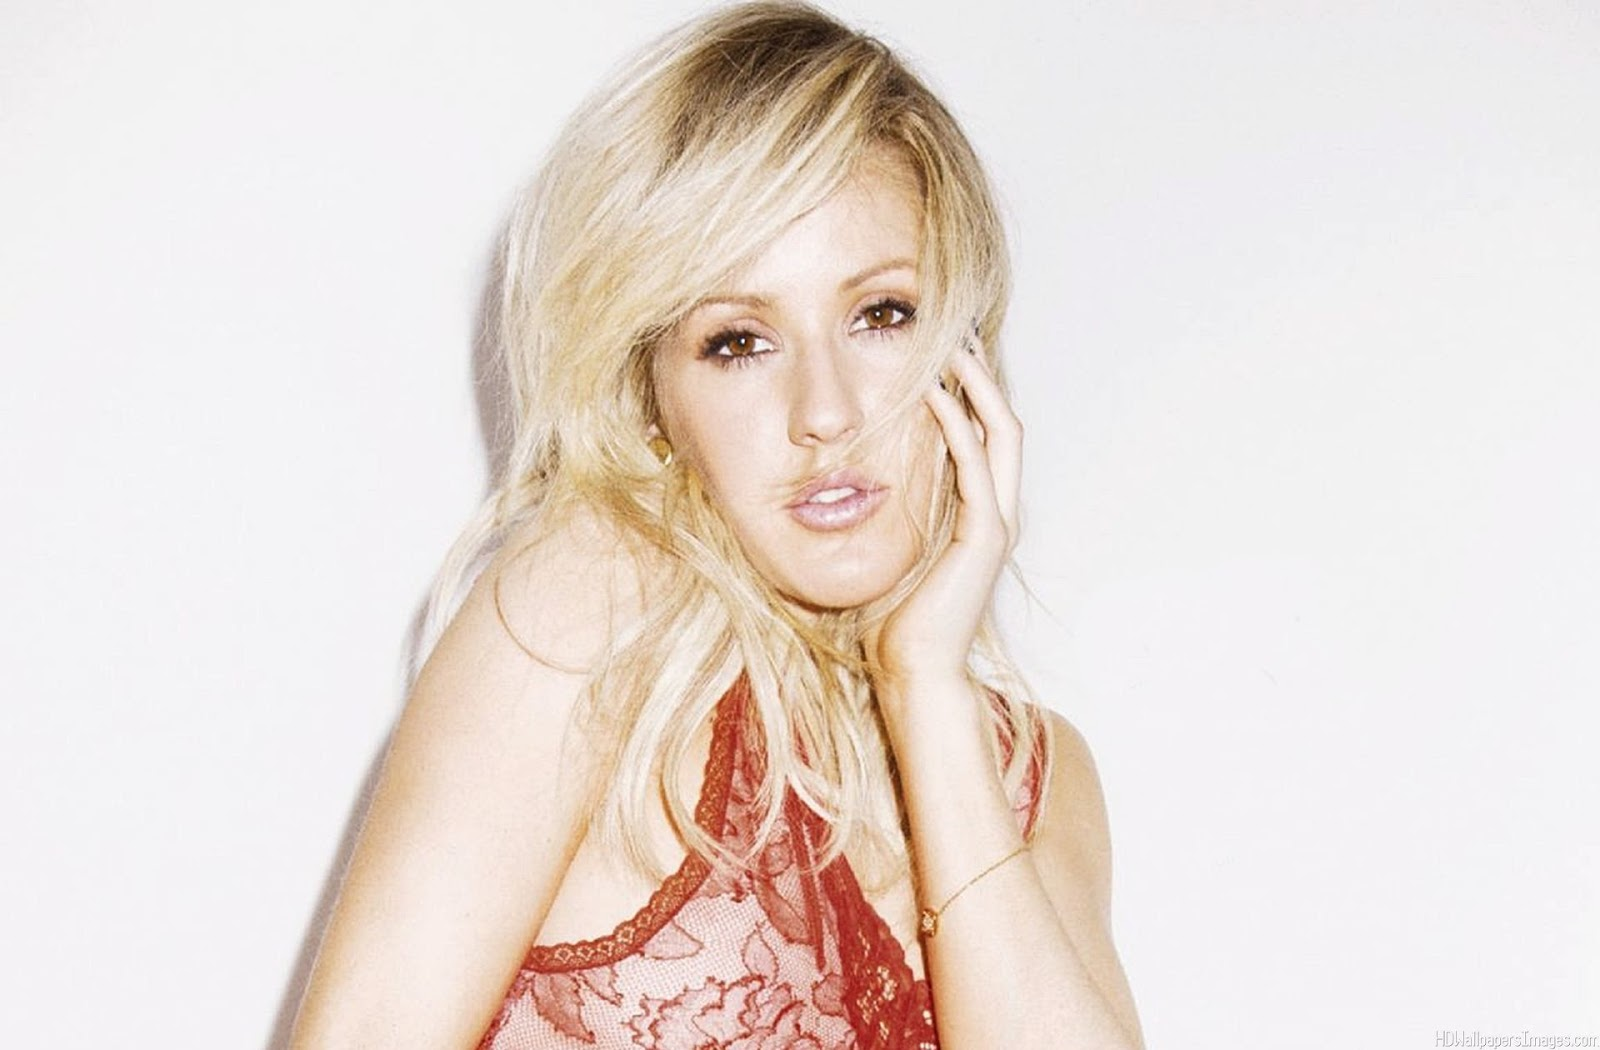 ellie goulding latest hd wallpapers 2015 spicy celebs